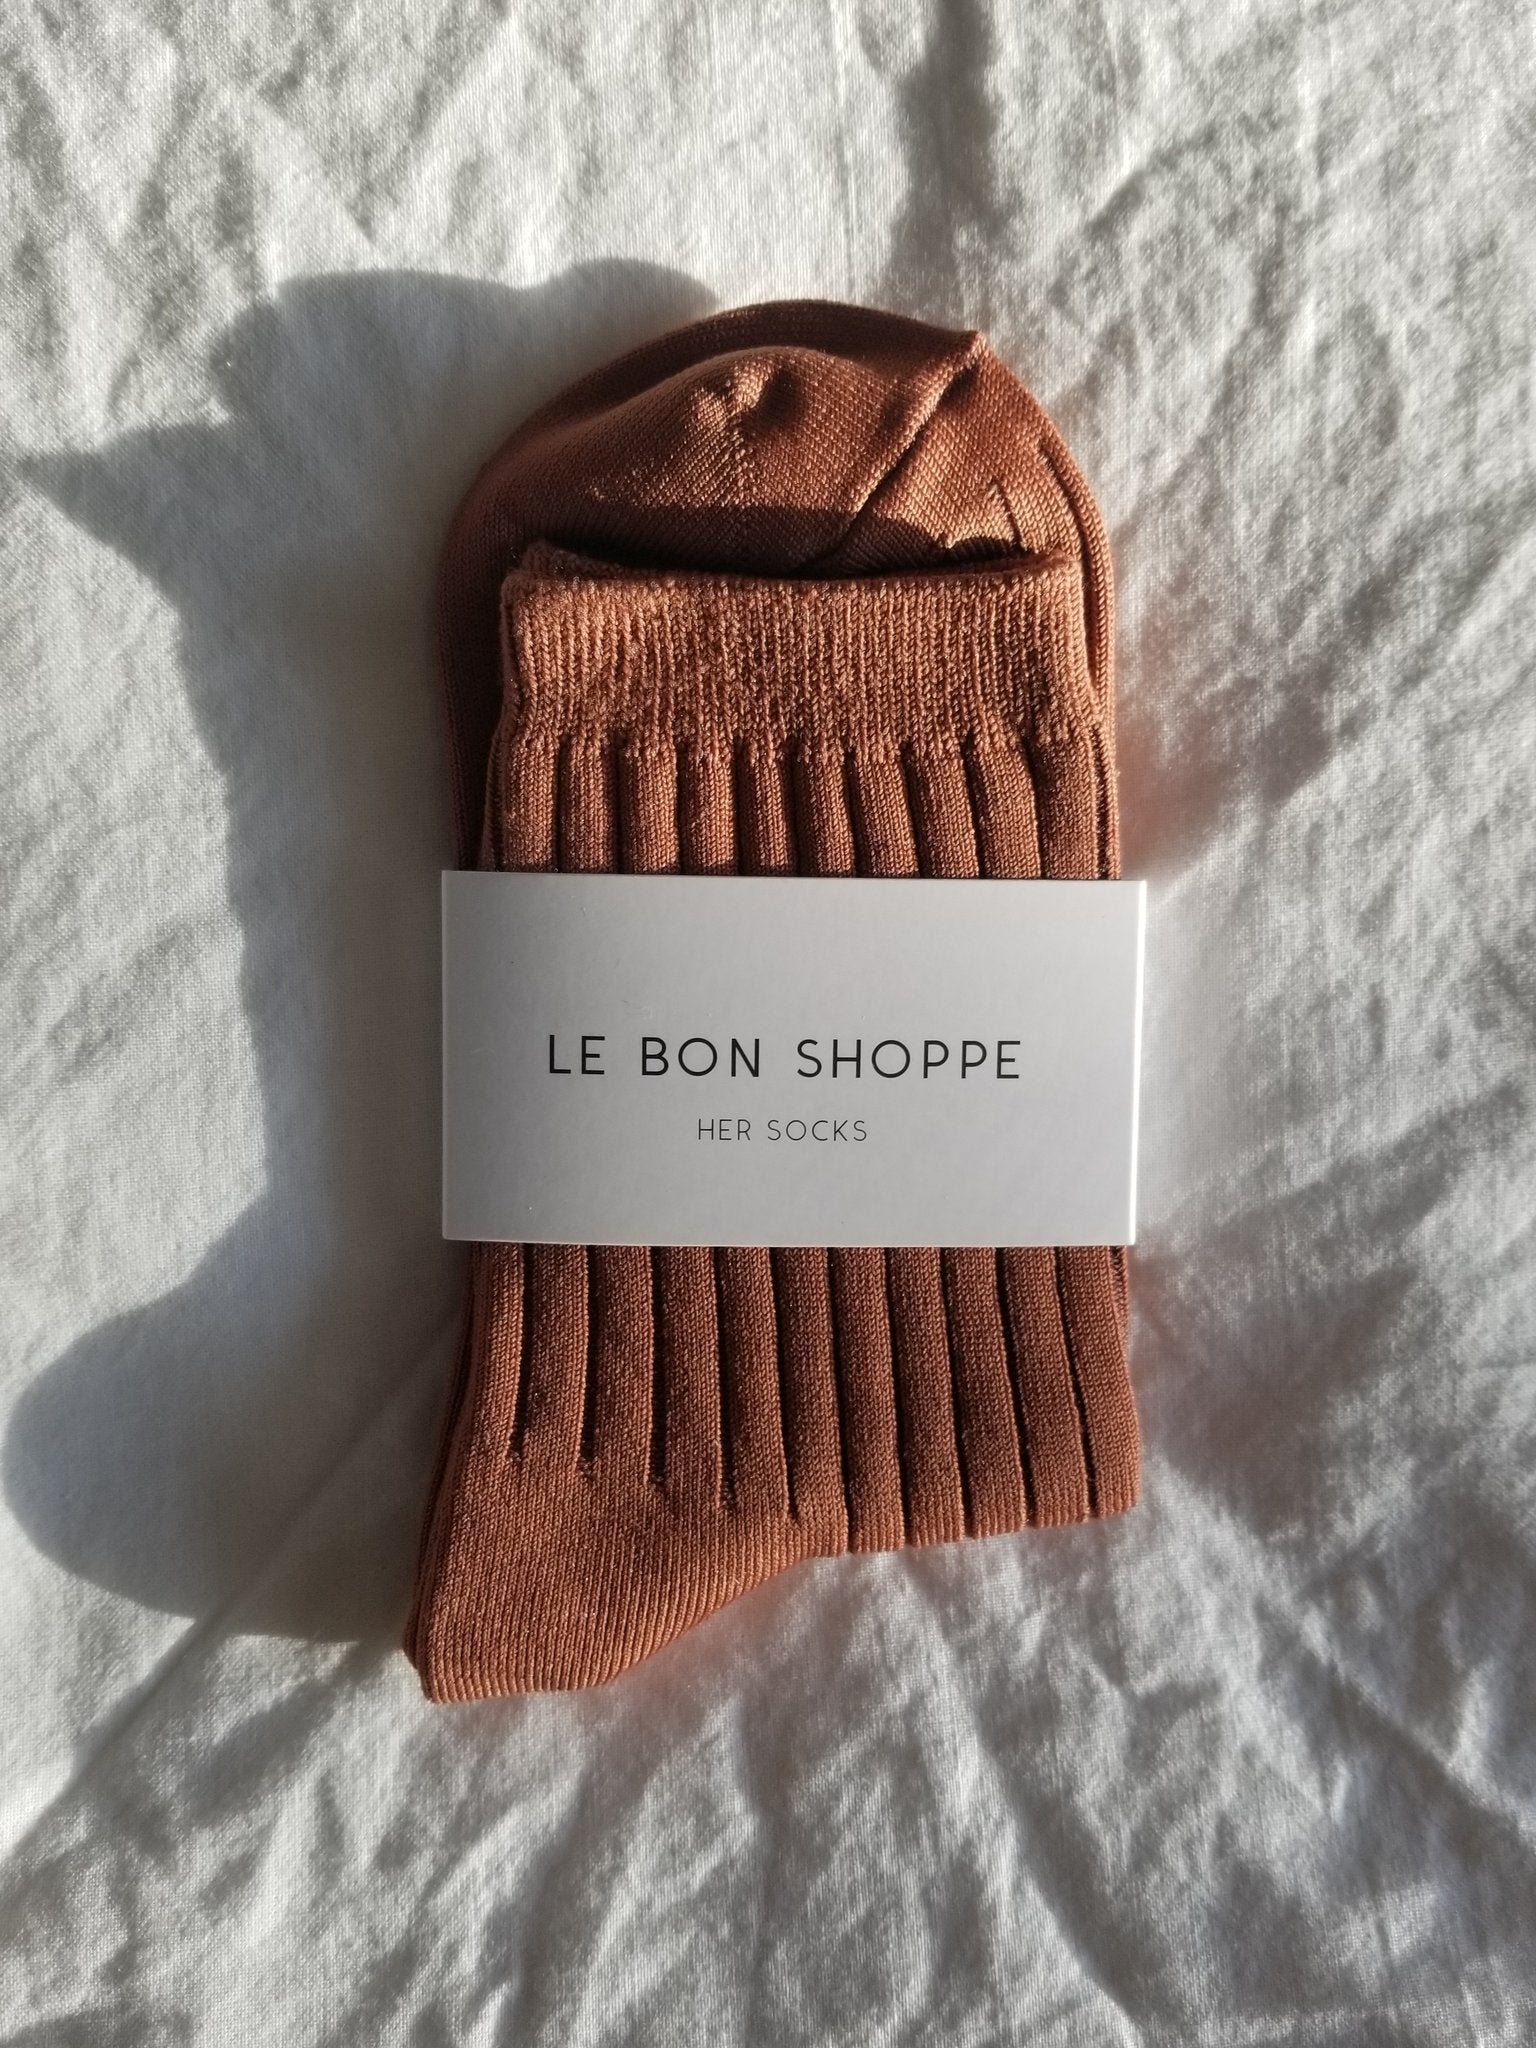 Le Bon Shoppe Her socks in Caramel. Available at EASE Toronto.